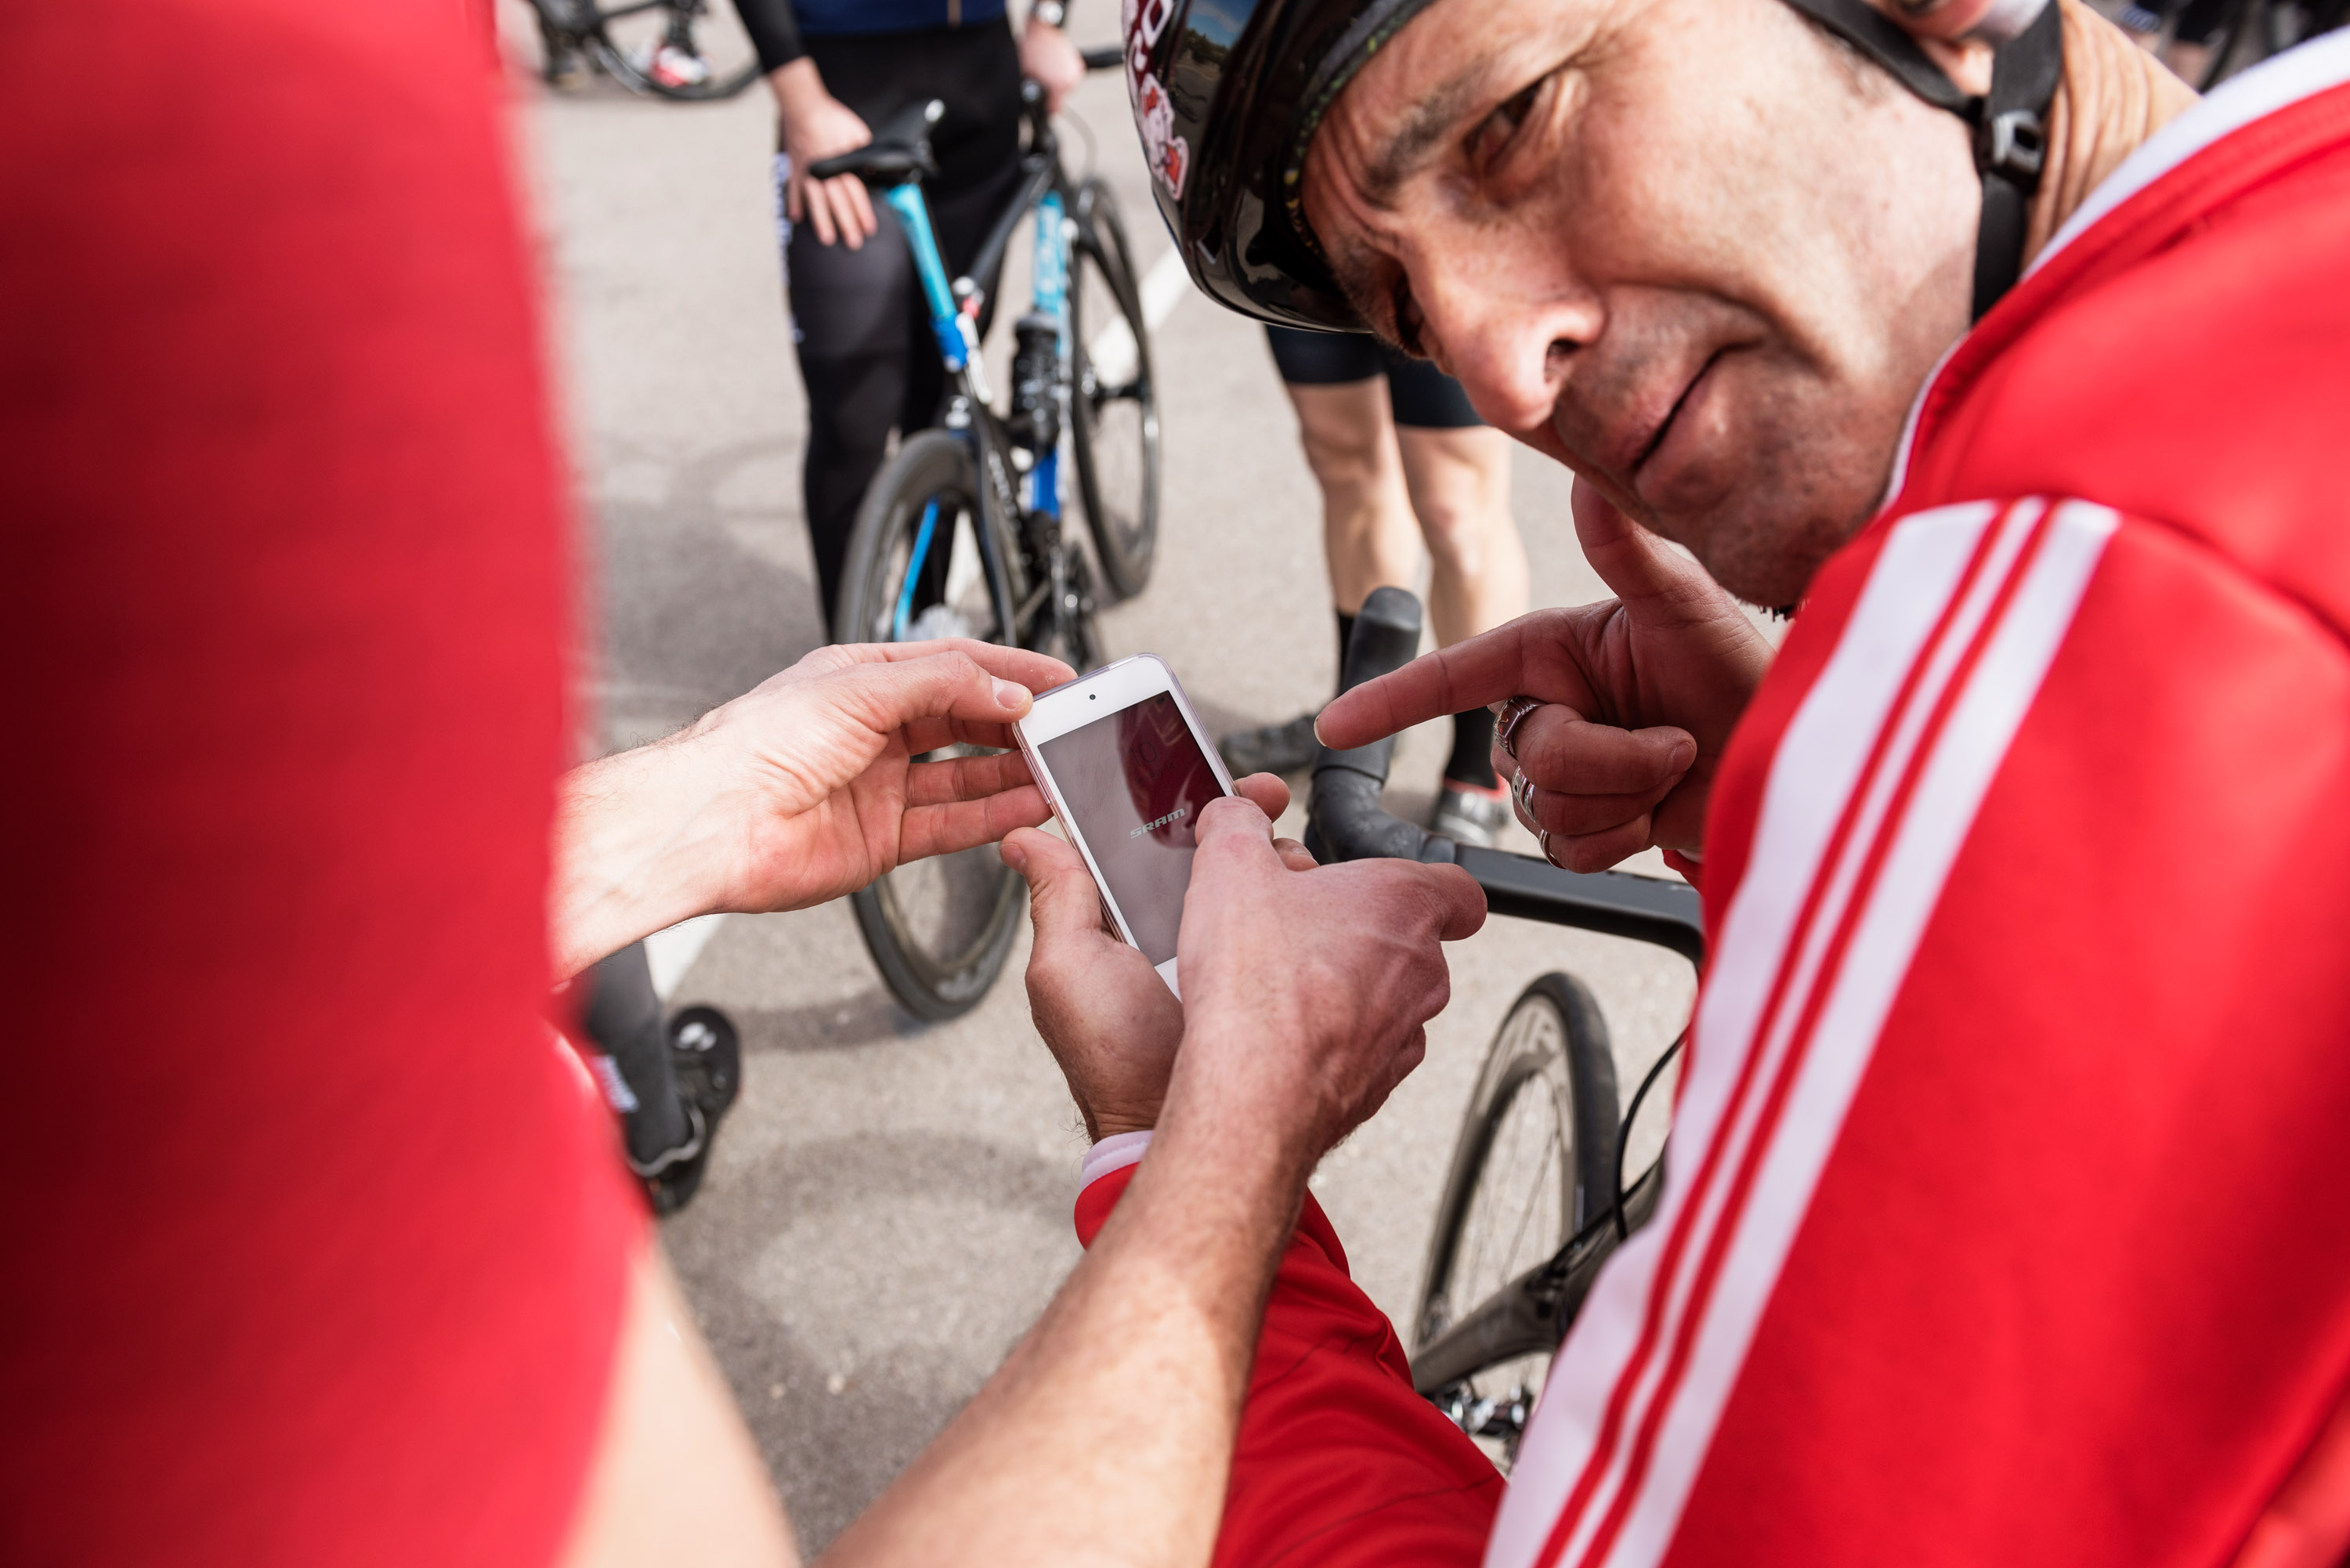 HERE'S HOW SRAM IS TRYING TO REPLACE STRAVA